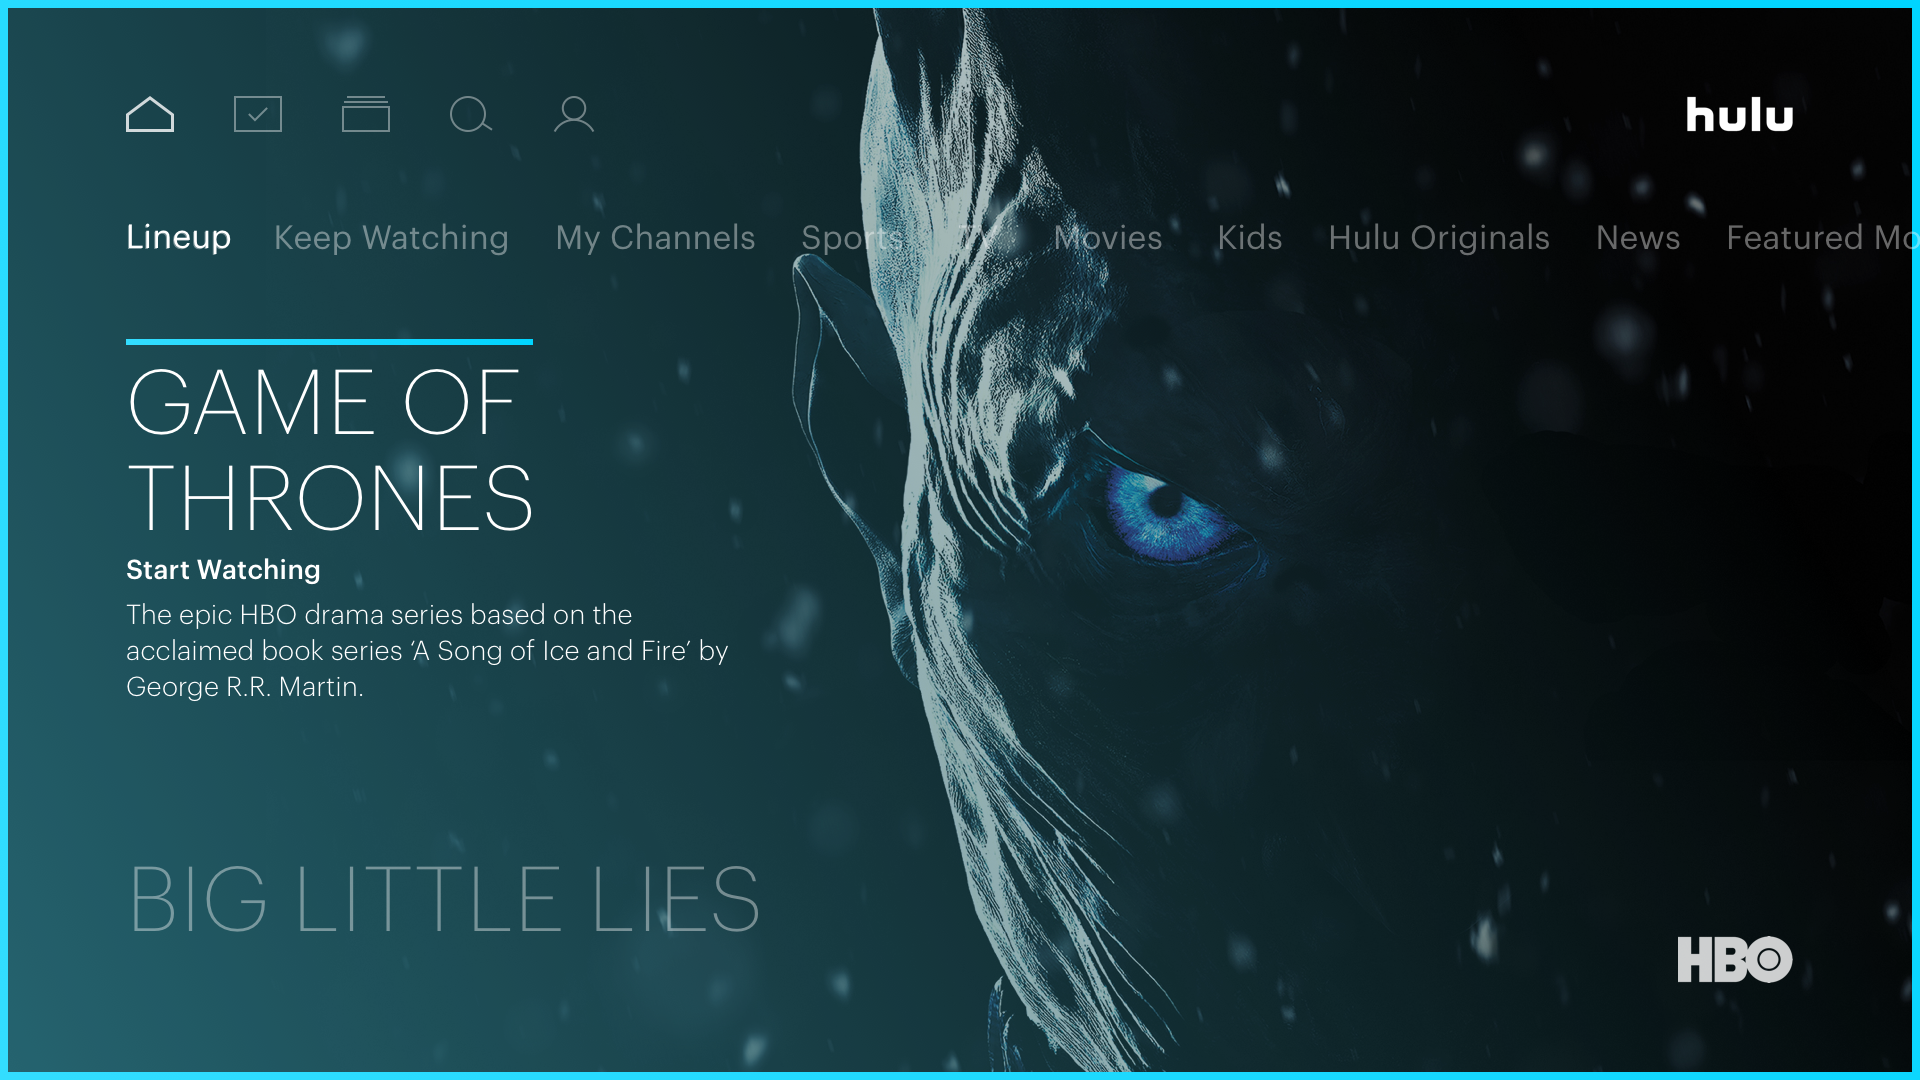 Hulu adds HBO to its lineup in time for Game of Thrones season 7